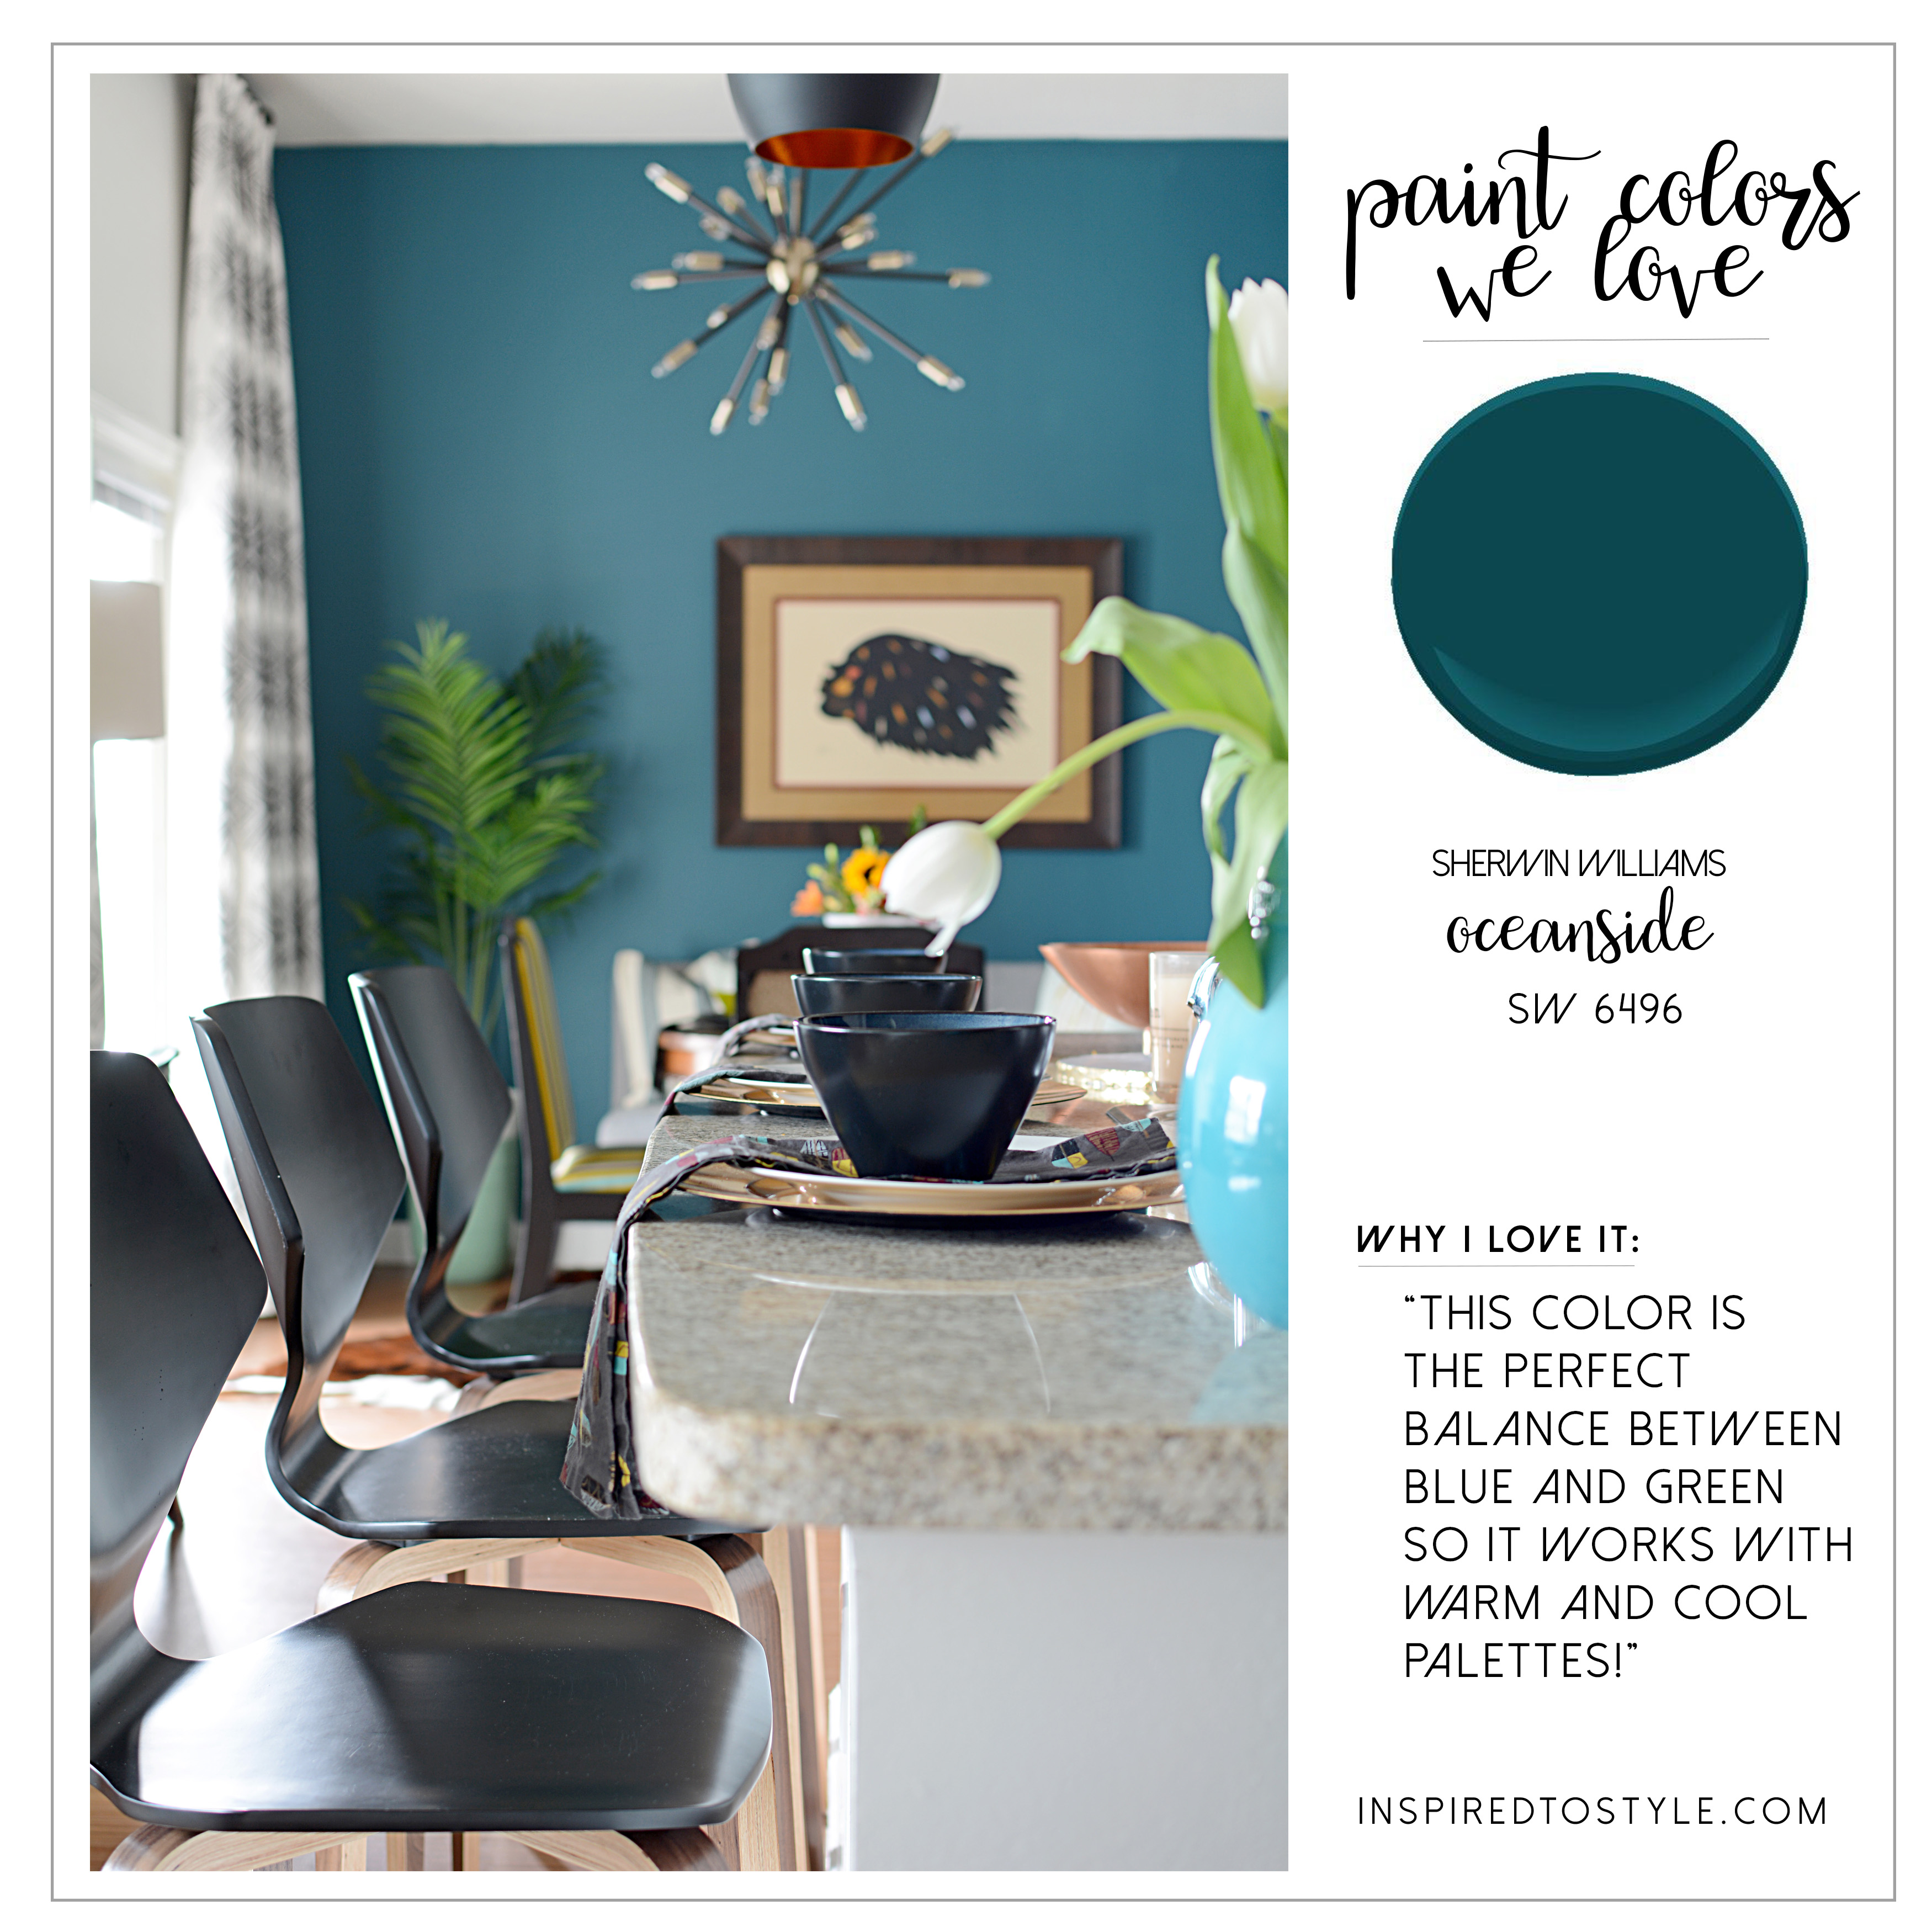 6 Of My Favorite Paint Colors Why They Work Inspired To